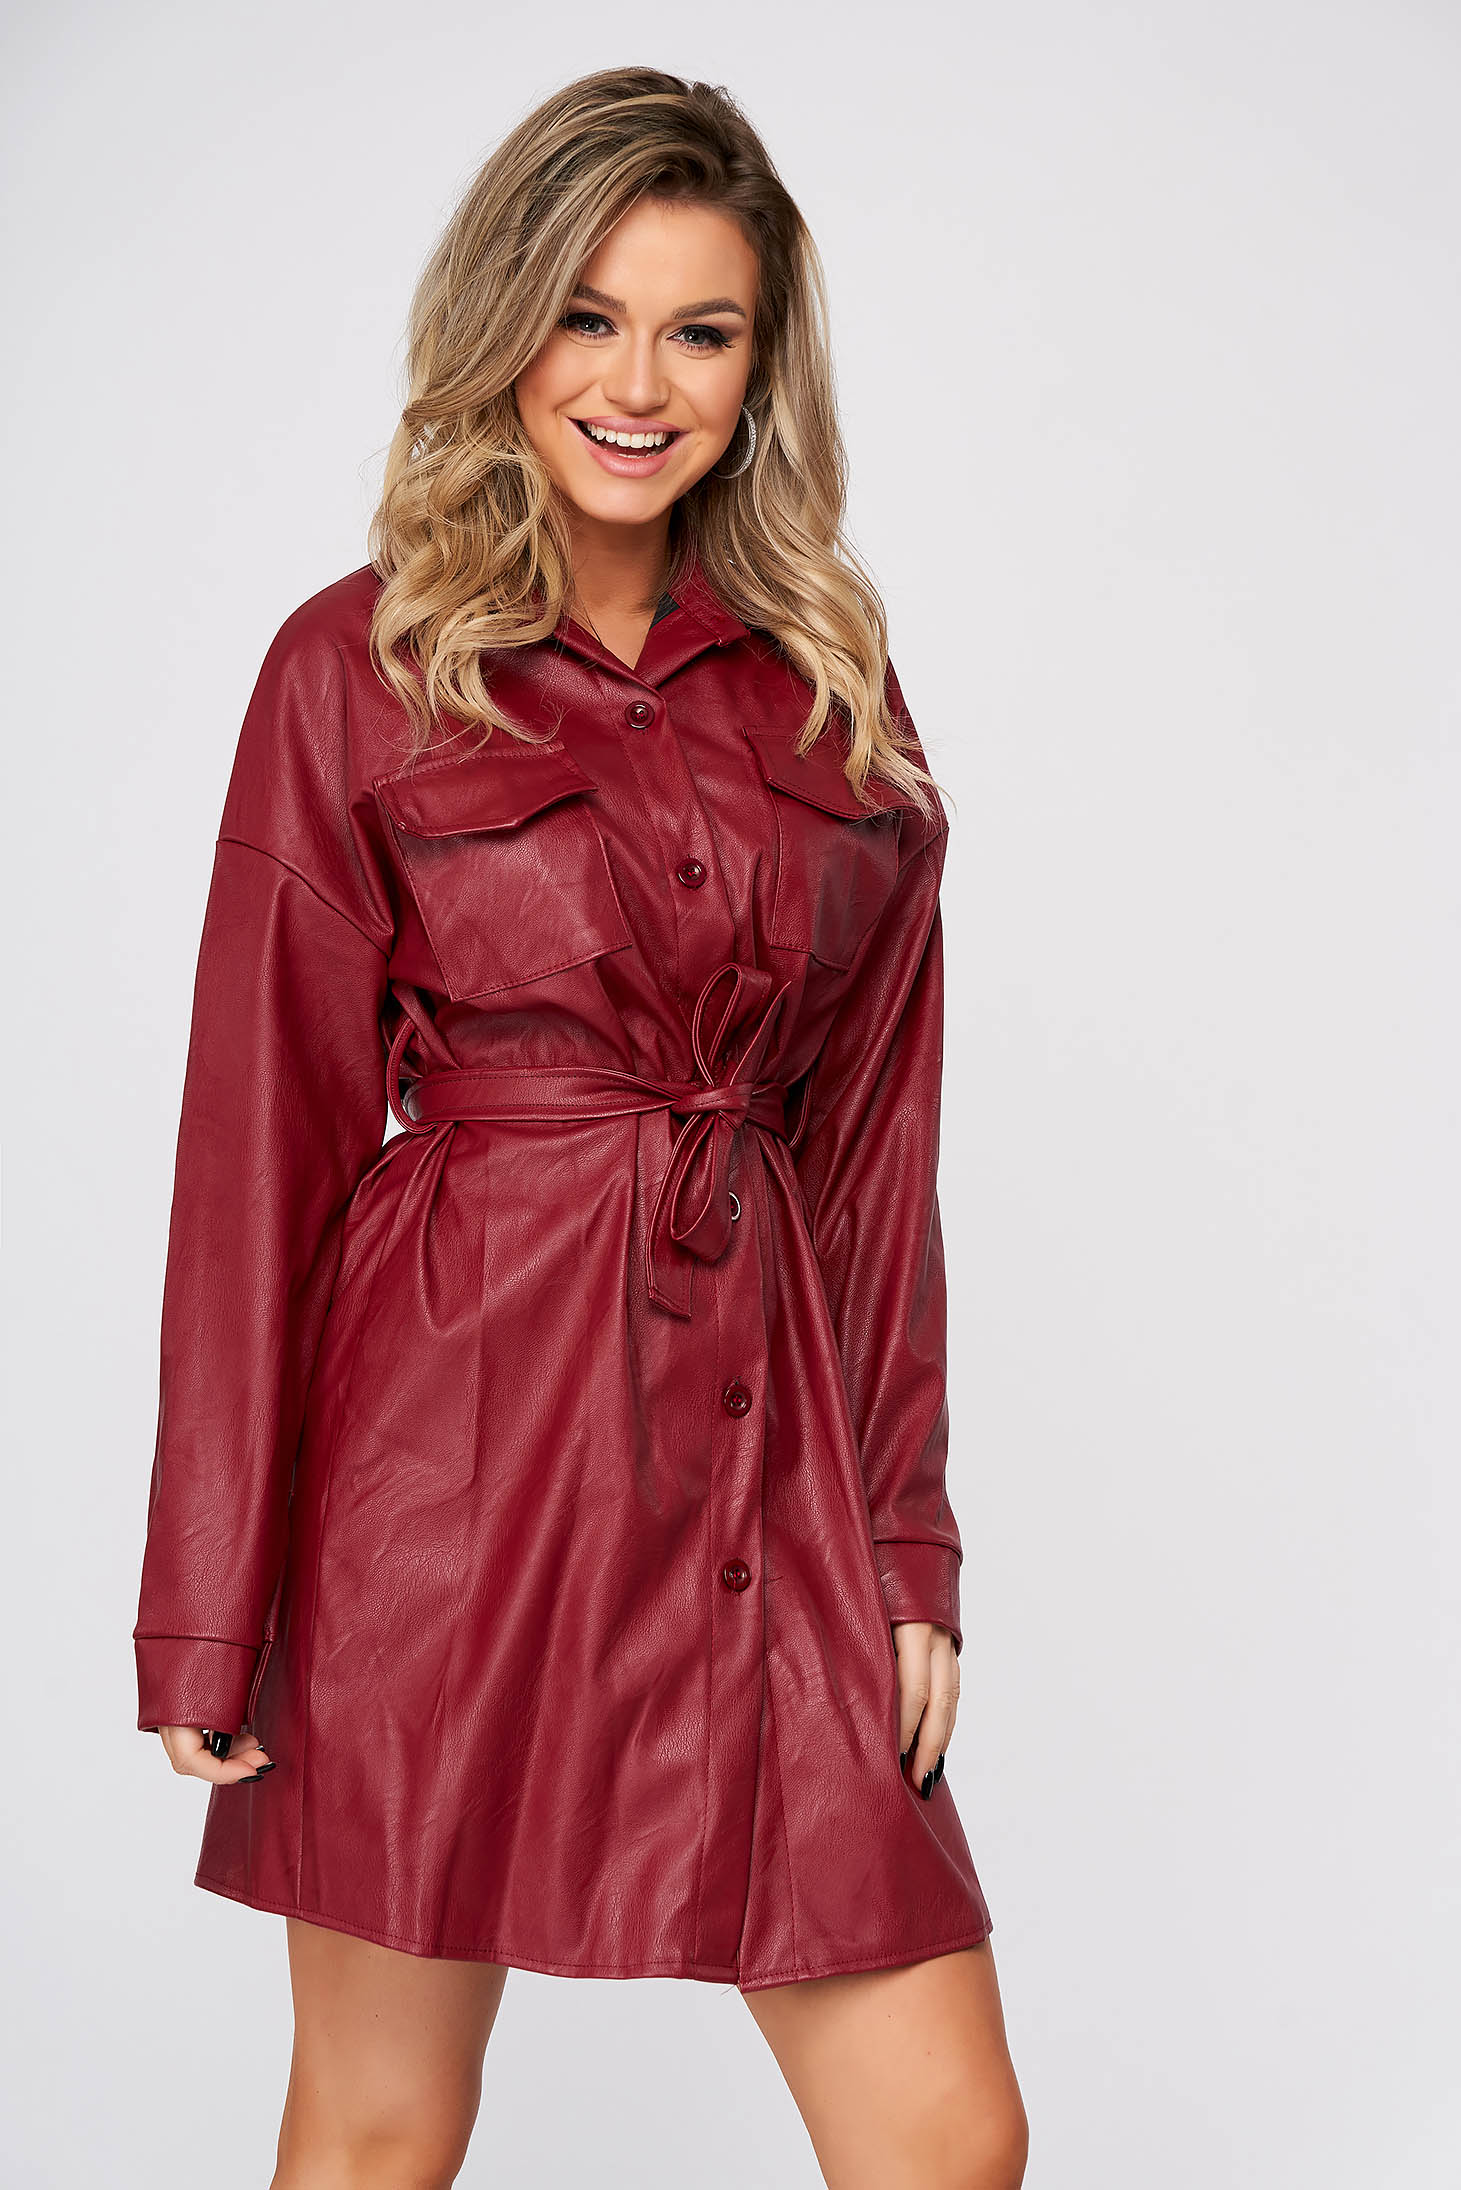 Burgundy dress short cut casual straight from ecological leather shirt dress